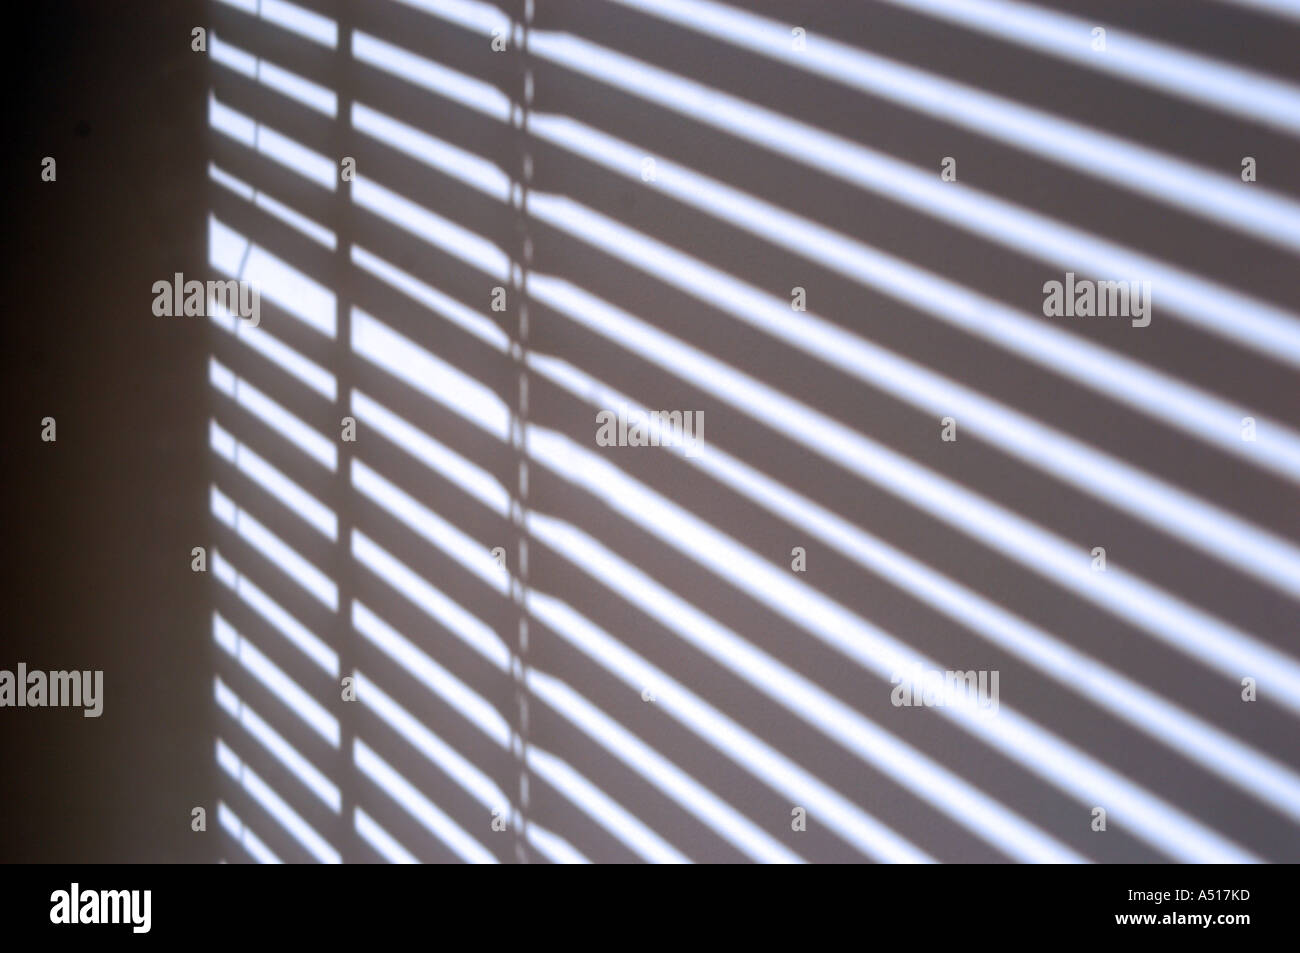 Shadow Of Blinds Cast On Wall Stock Photo 6379132 Alamy